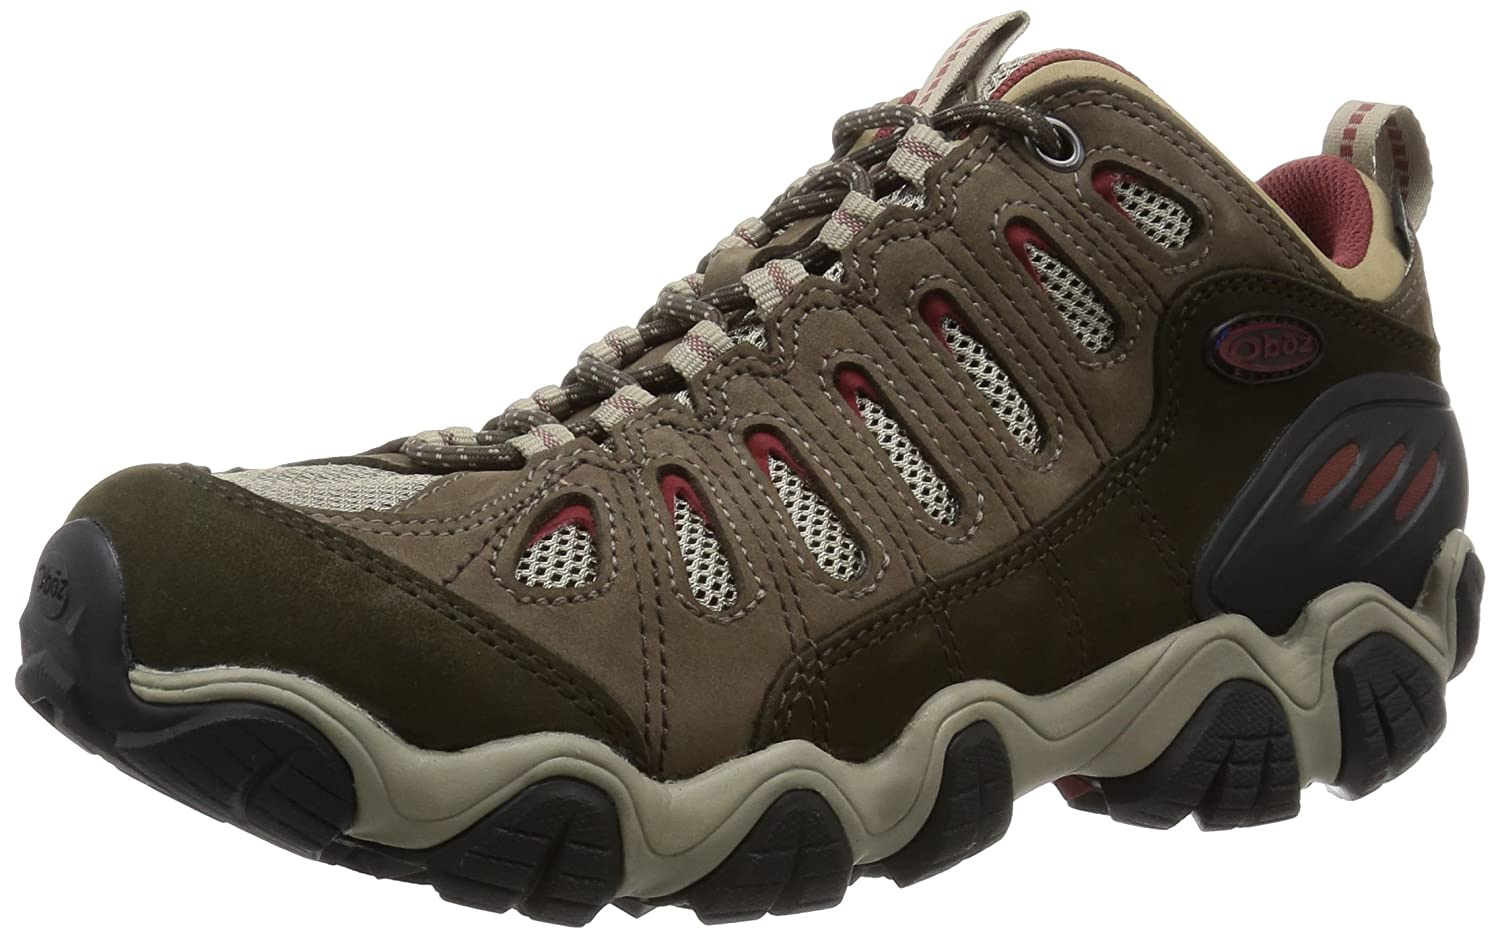 Oboz Men's Sawtooth Low Bdry Hiking Shoe B00SVYBRIG 9 D(M) US|Russet